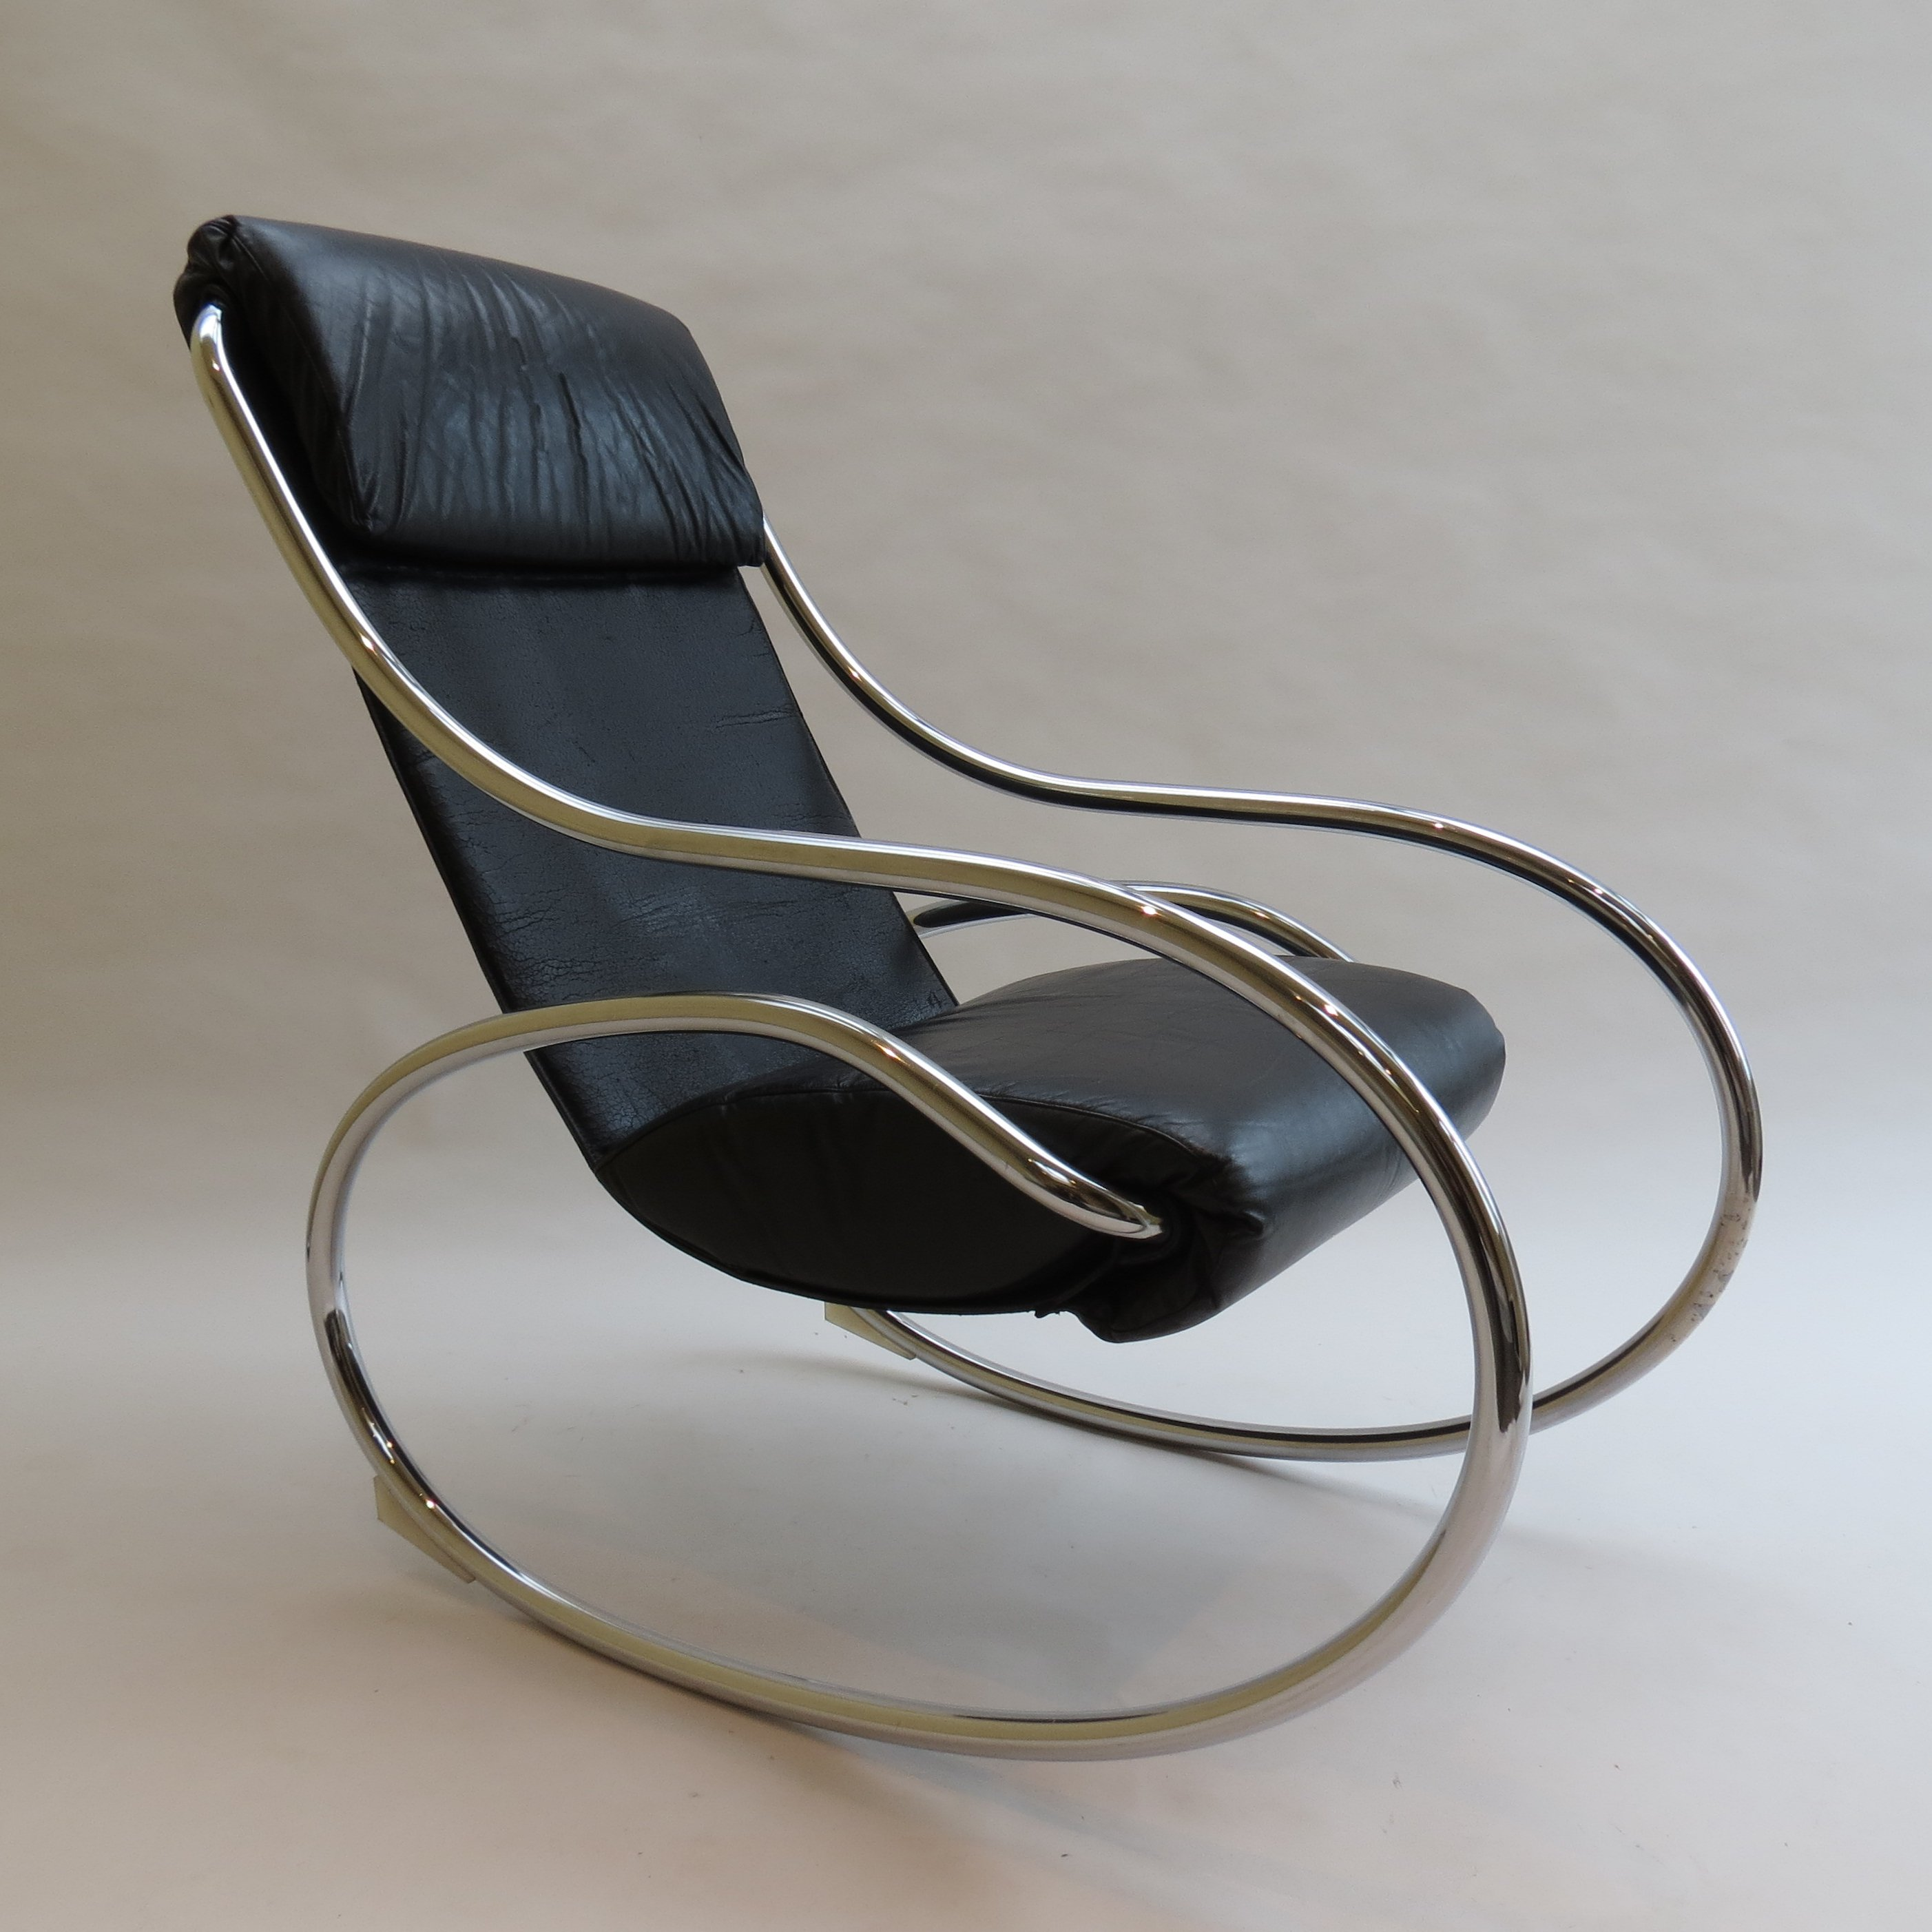 Marvelous Chrome Black Leather Sculptural Rocking Chair By Heals Andrewgaddart Wooden Chair Designs For Living Room Andrewgaddartcom